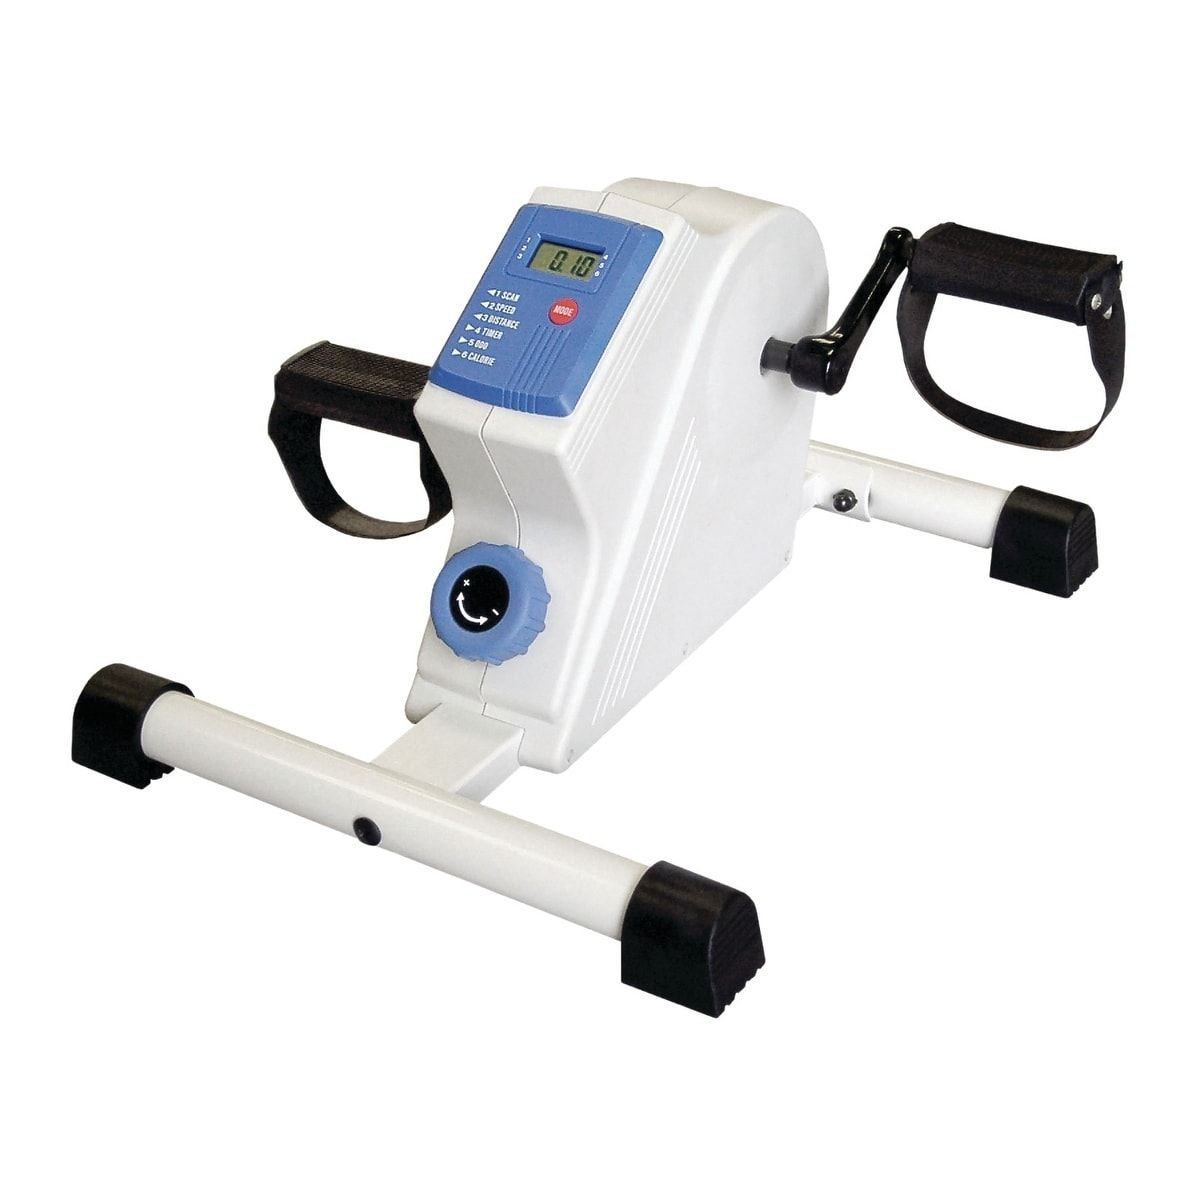 Cando pedal exerciser deluxe with lcd monitor no